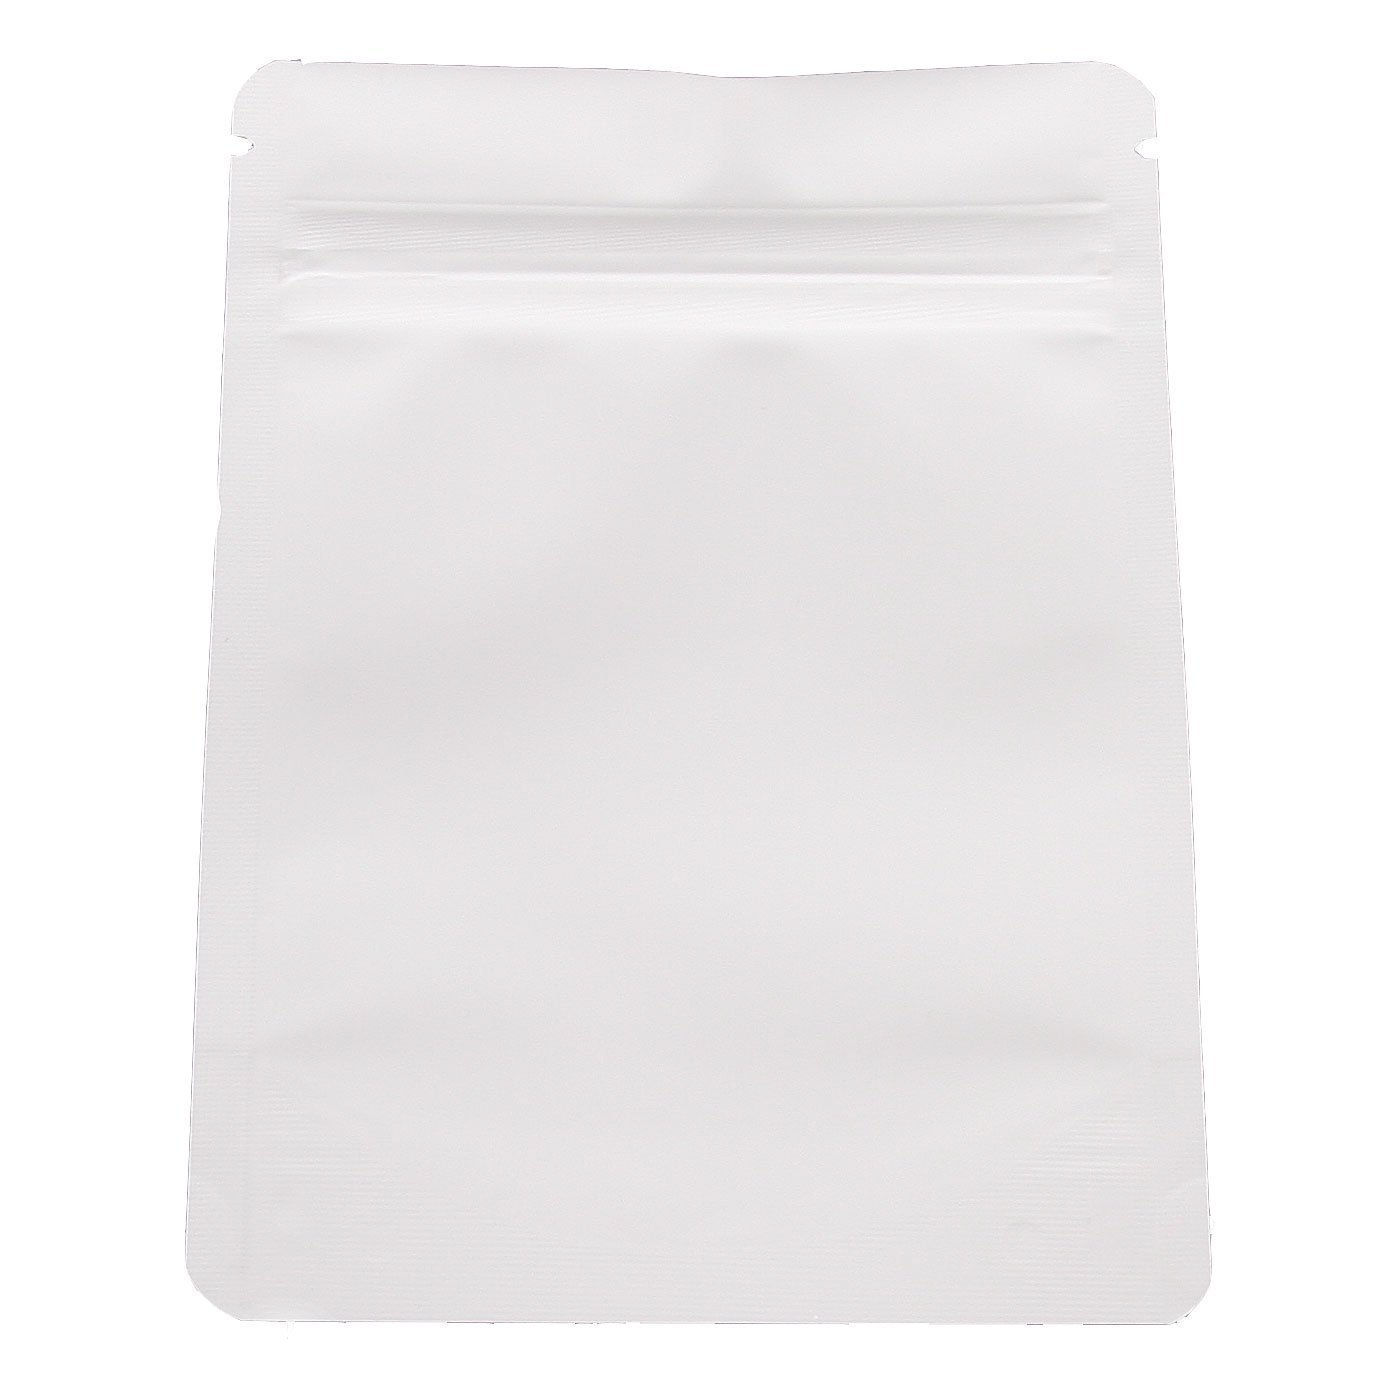 Smell Proof Mylar Bag (Eighth Ounce) White